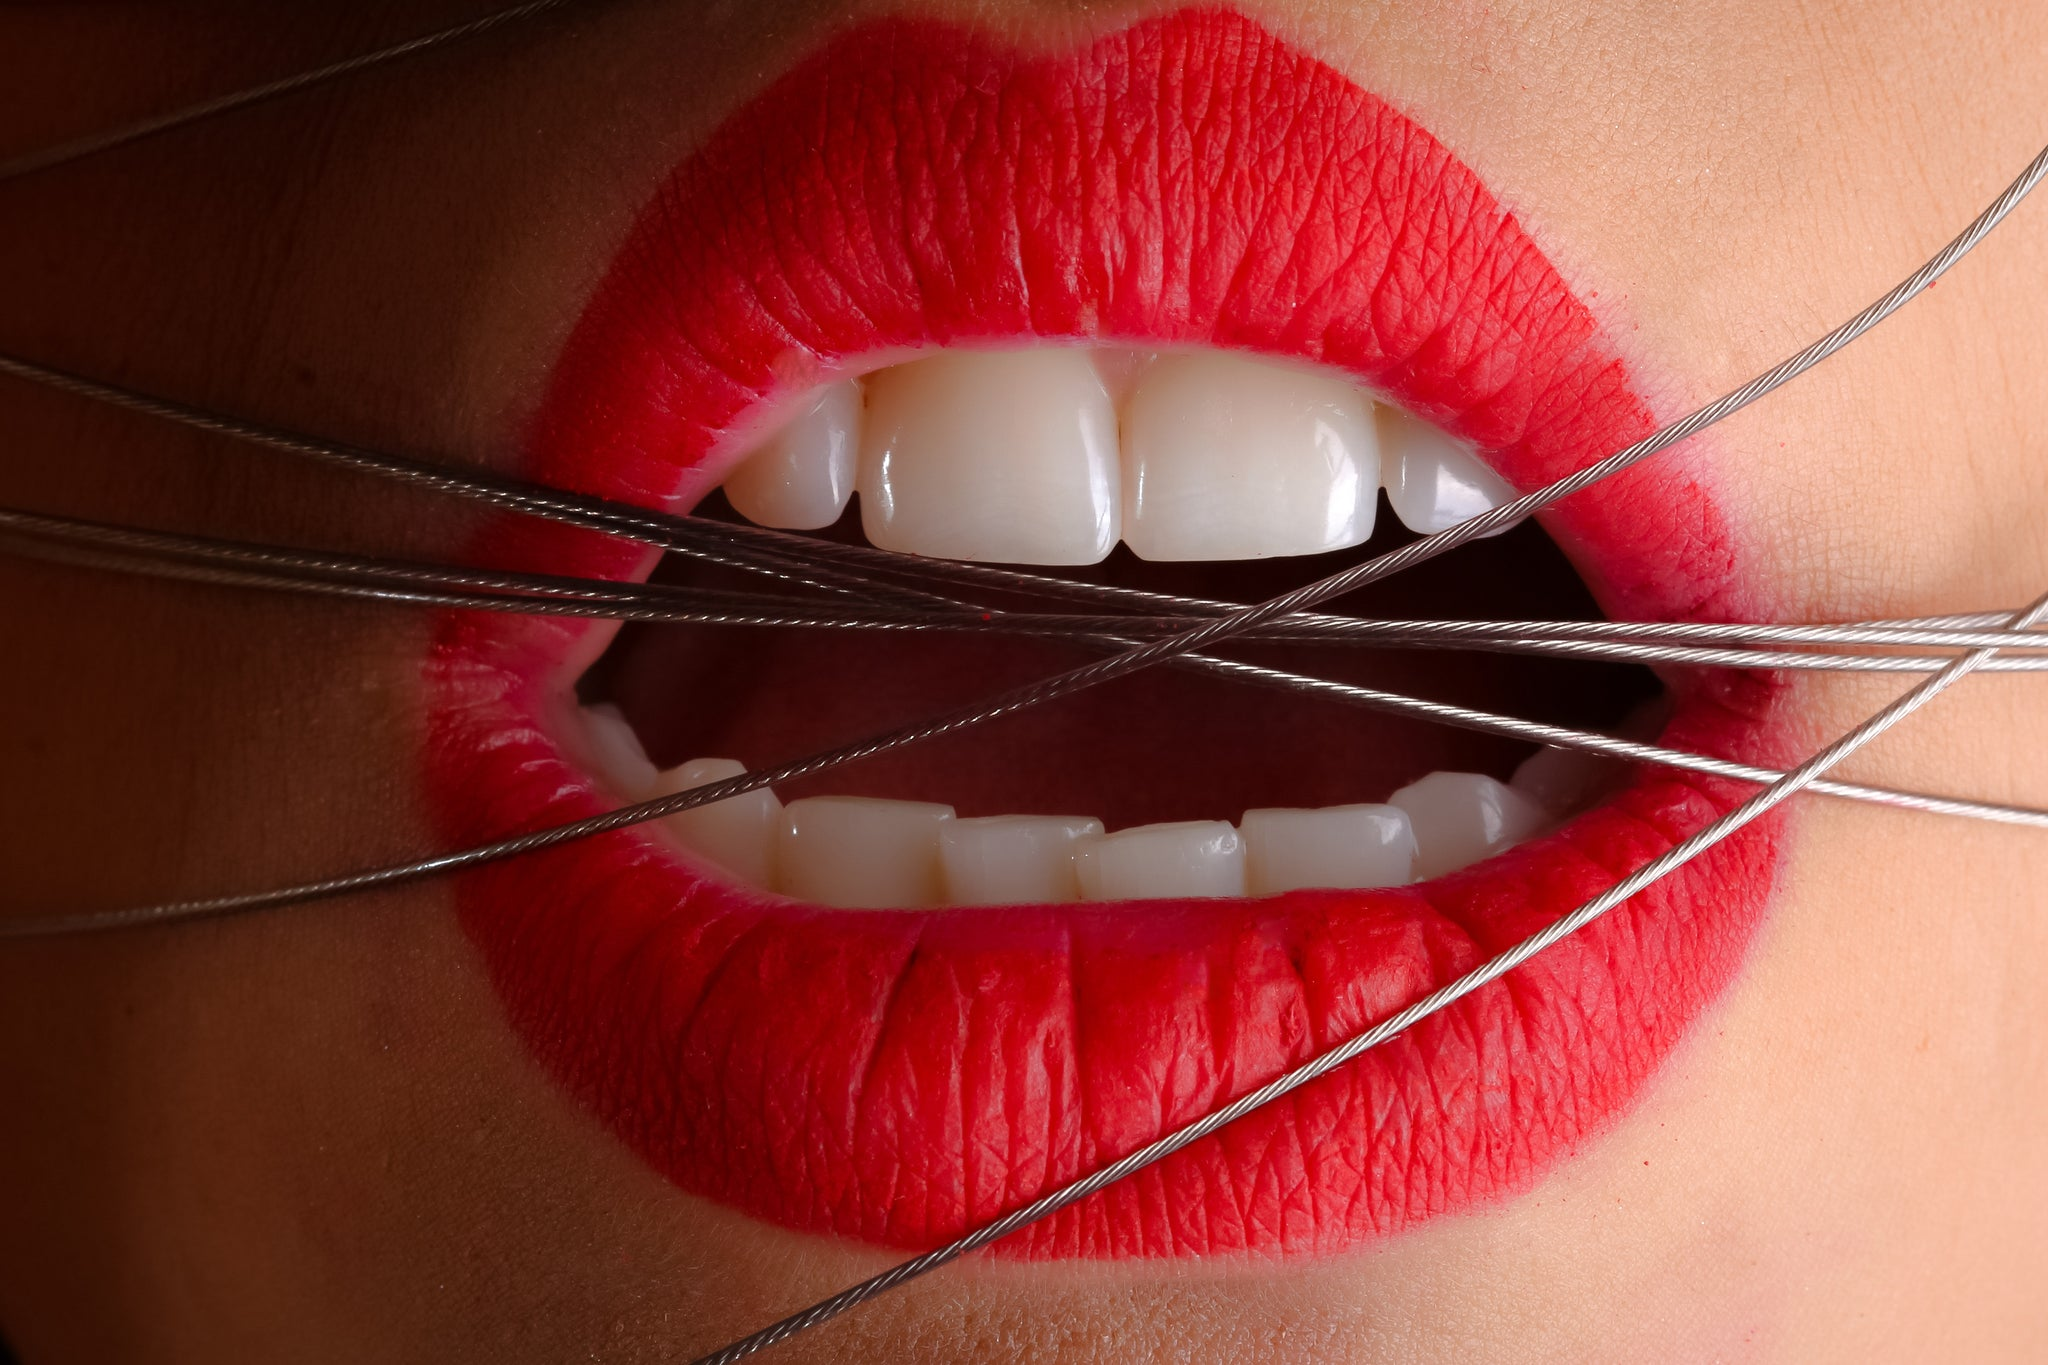 Woman with red lipstick with wires wrapped around her mouth, for AutoBrush